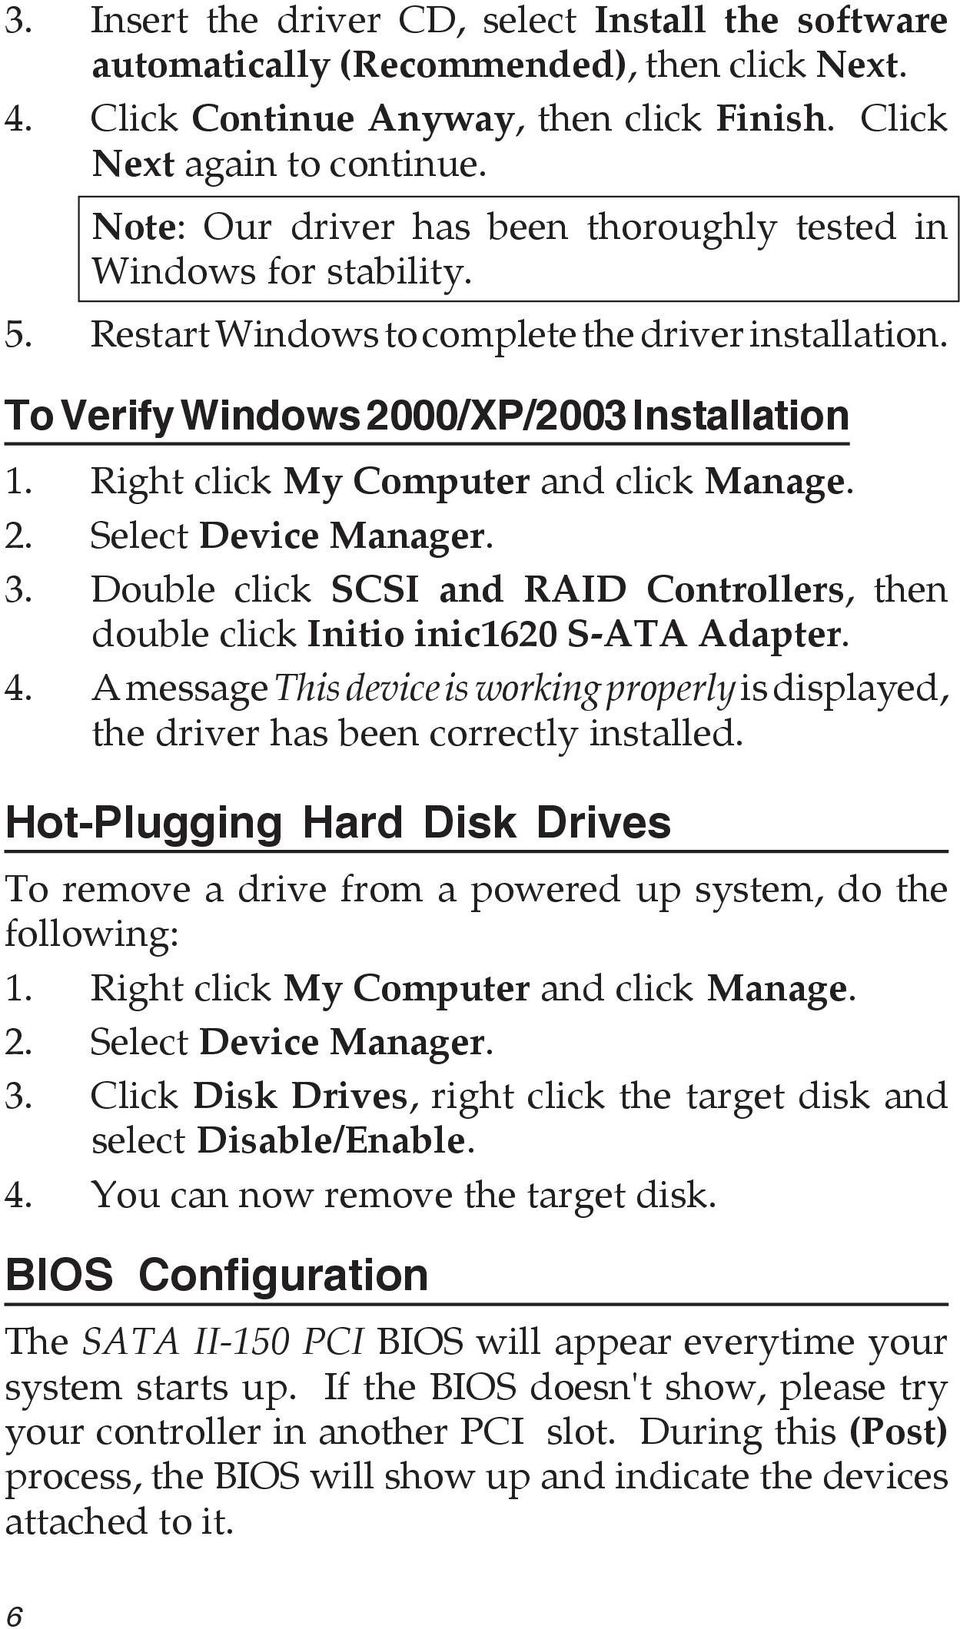 Right click My Computer and click Manage. 2. Select Device Manager. 3. Double click SCSI and RAID Controllers, then double click Initio inic1620 S-ATA Adapter. 4.